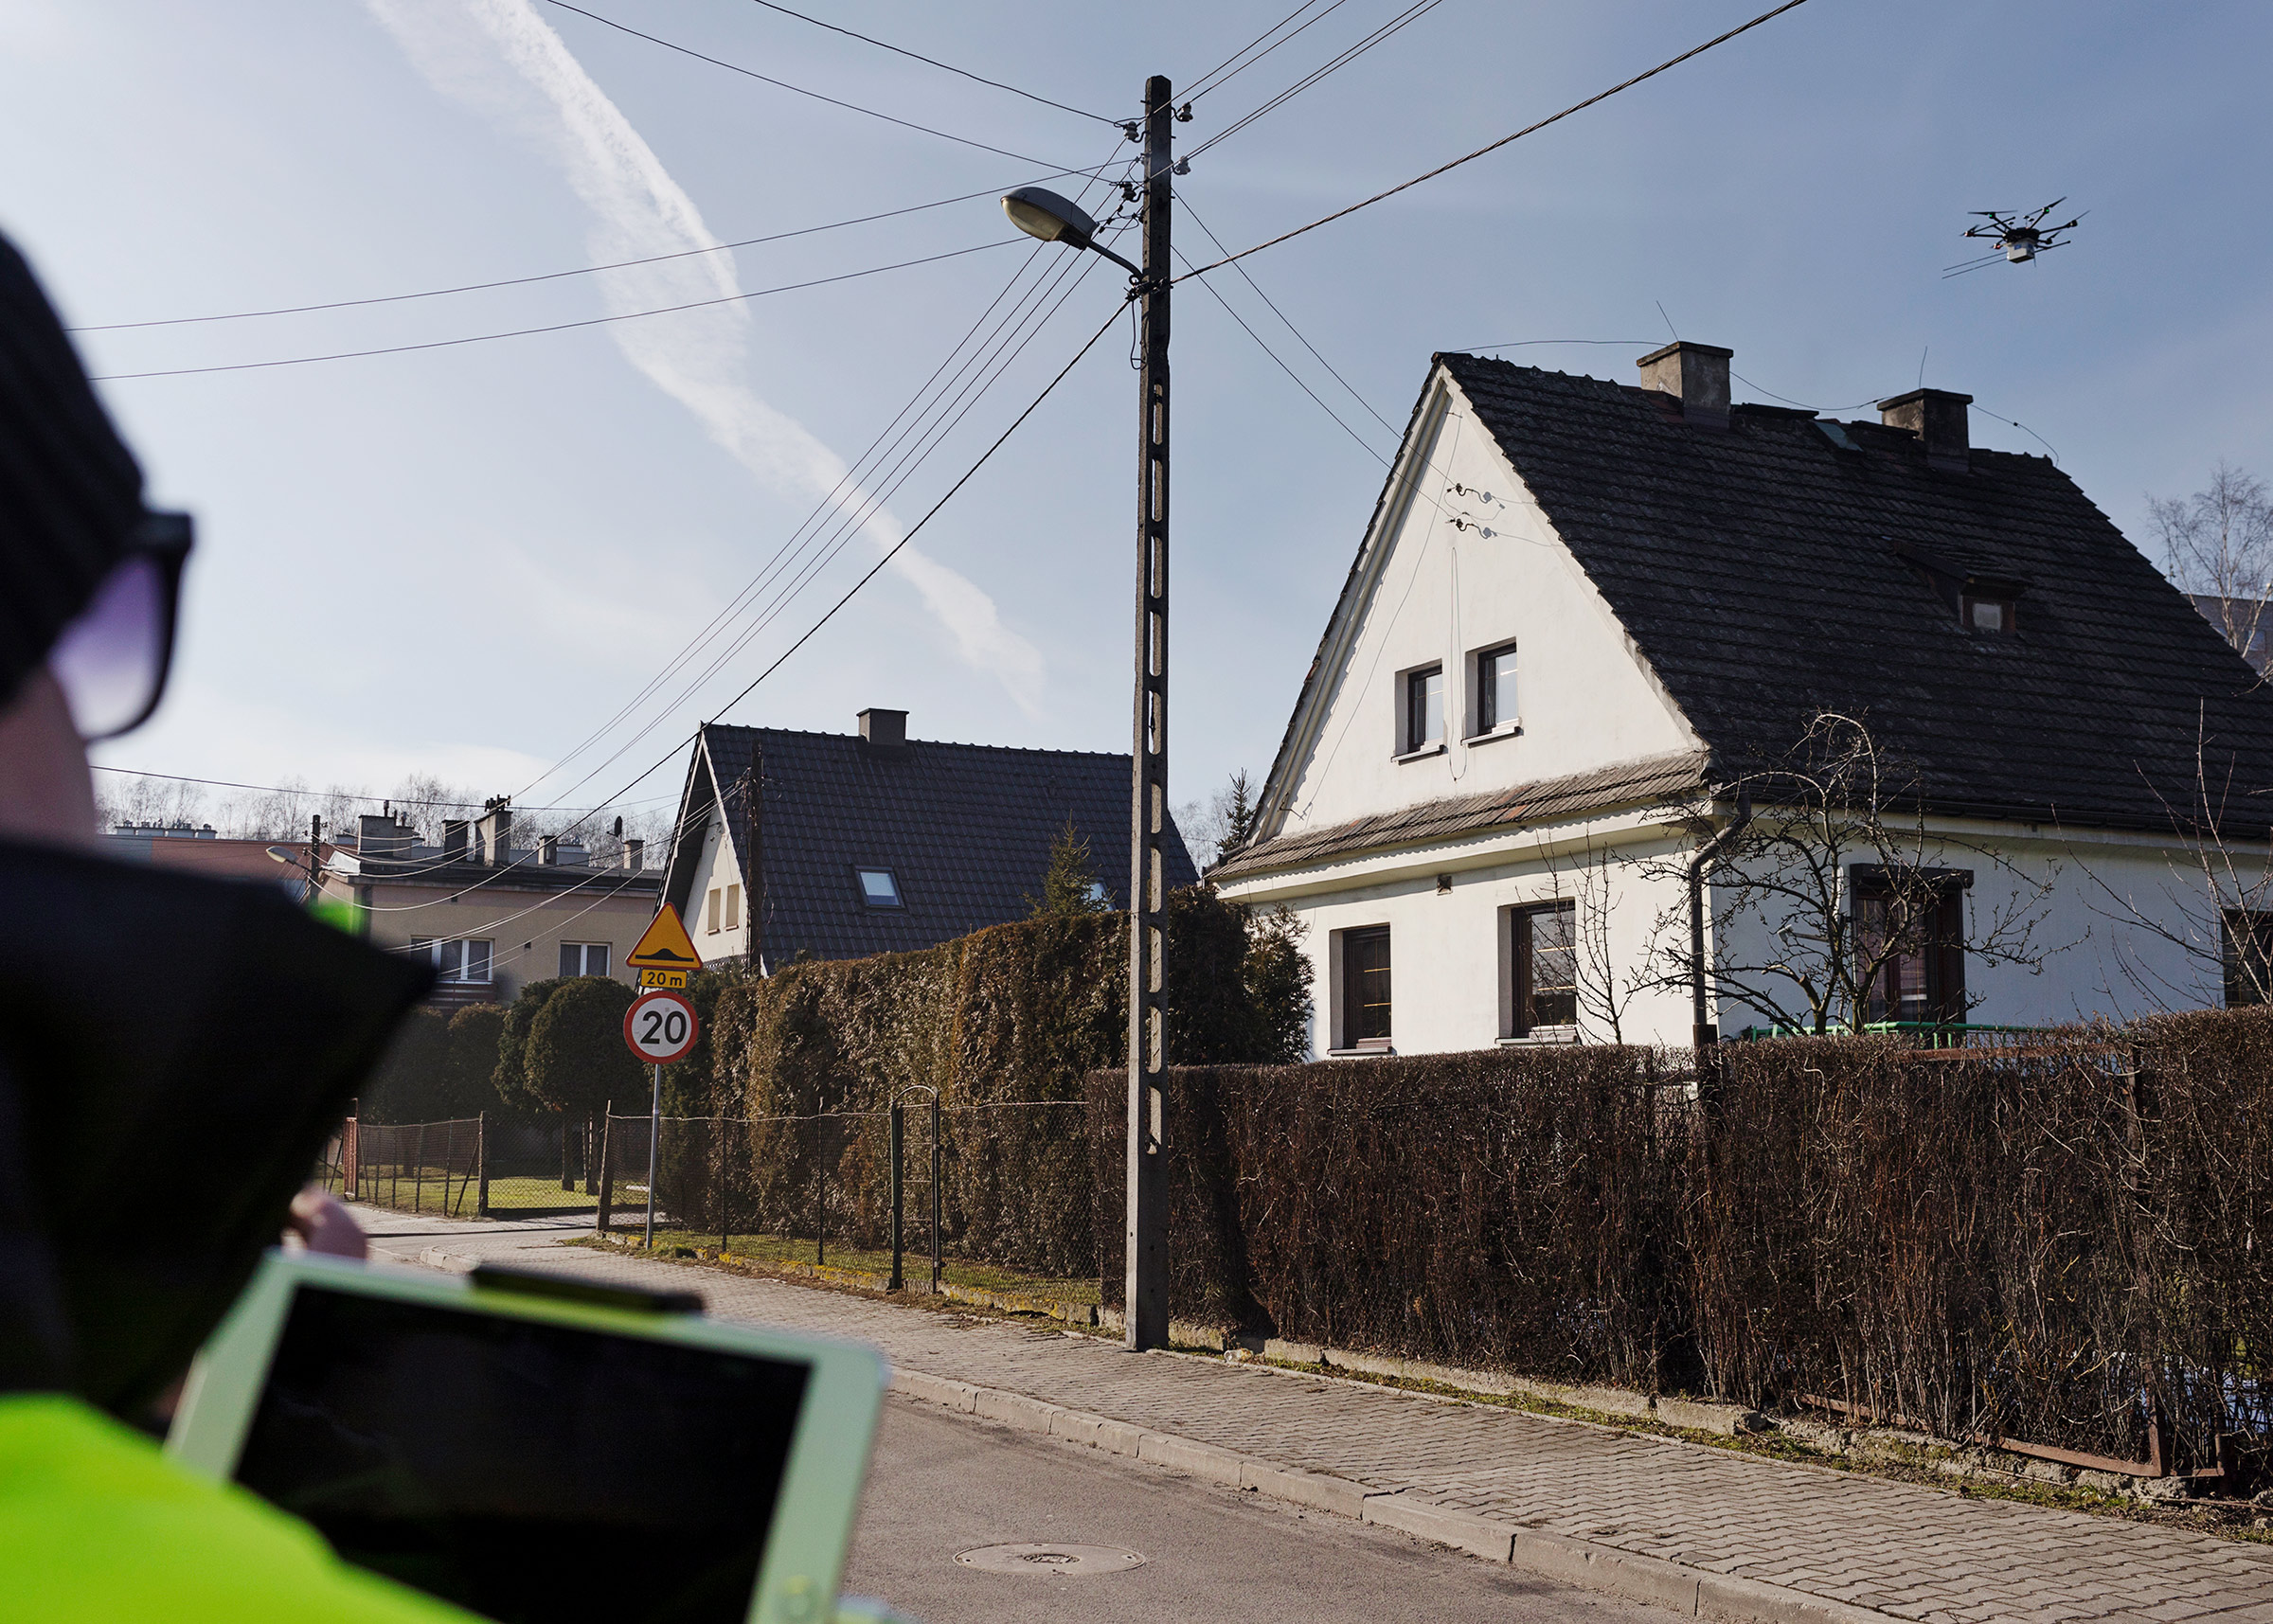 Police in Katowice, one of the most polluted cities in Europe, use drone technology to test smoke coming out of chimneys in 2018.